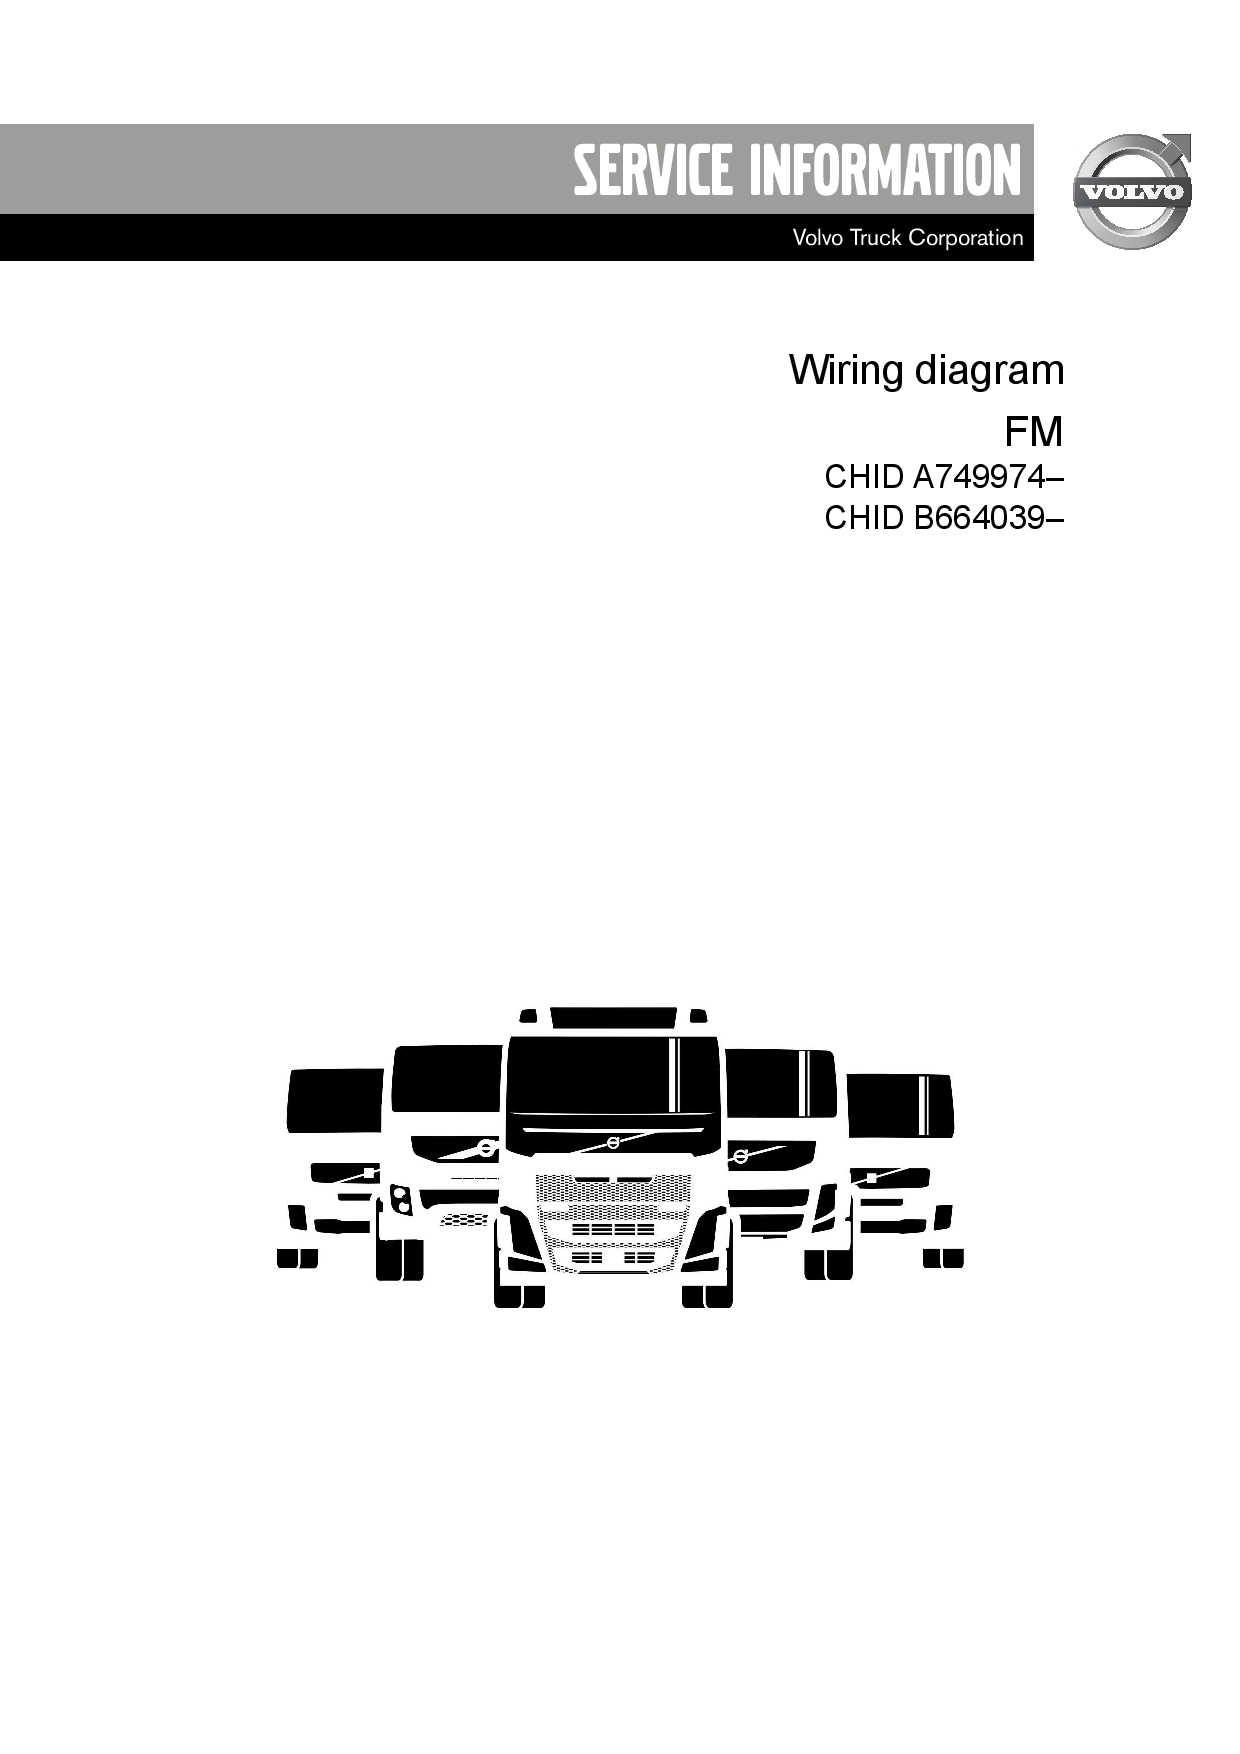 Volvo Truck Fm Pc04 July 2013 Wiring Diagram Pdf Download - Service Manual